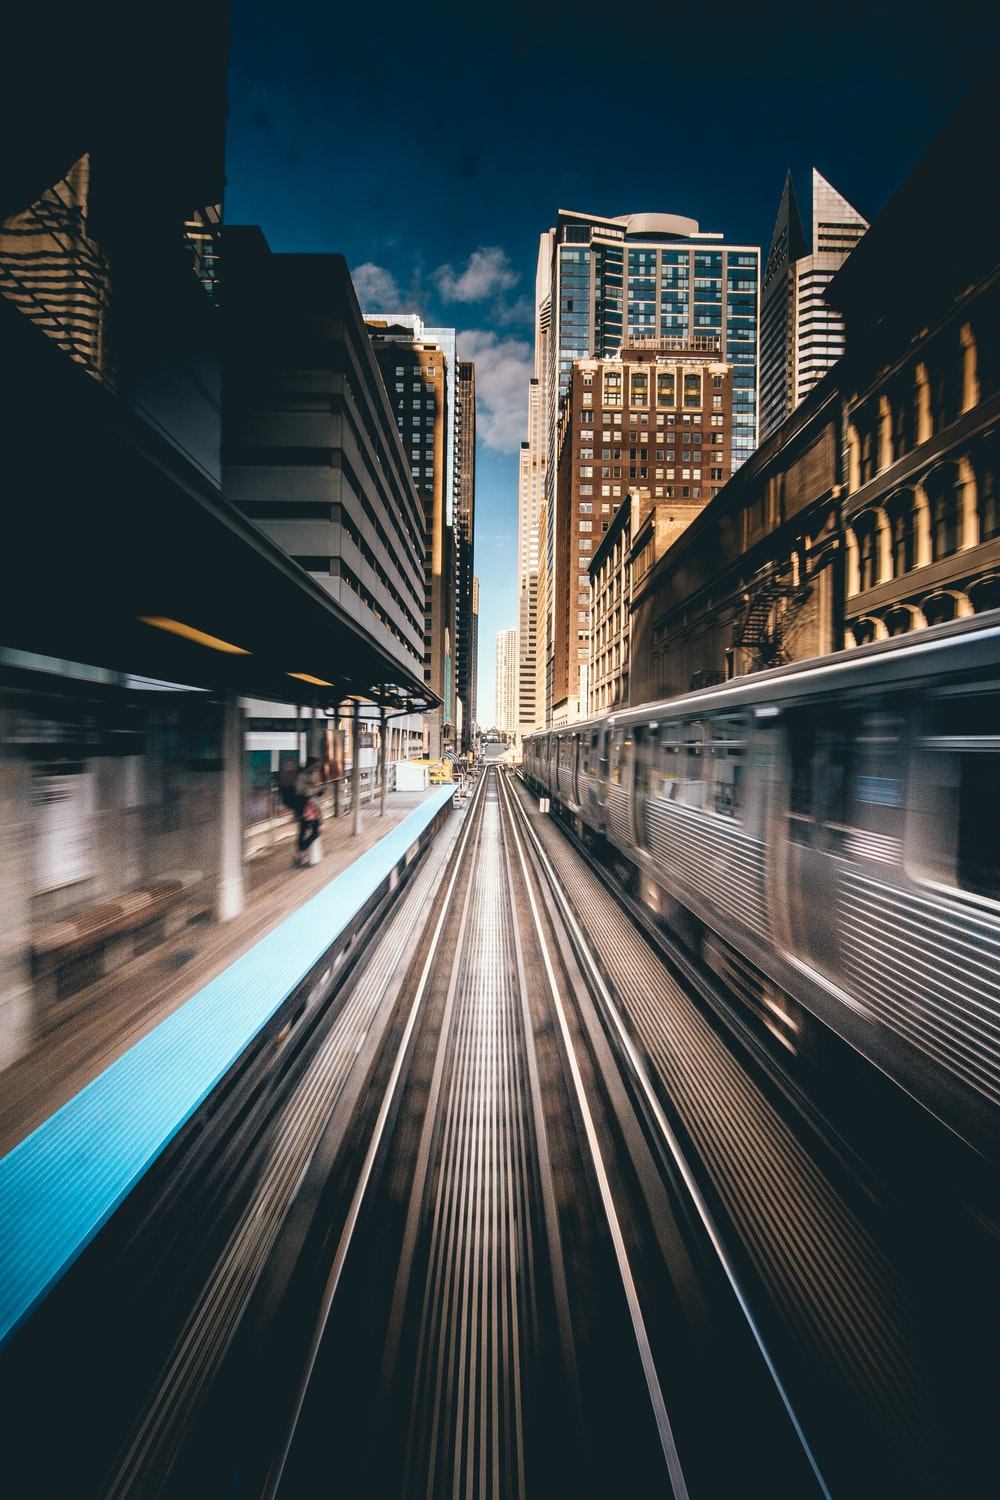 time-lapse photography of train traveling